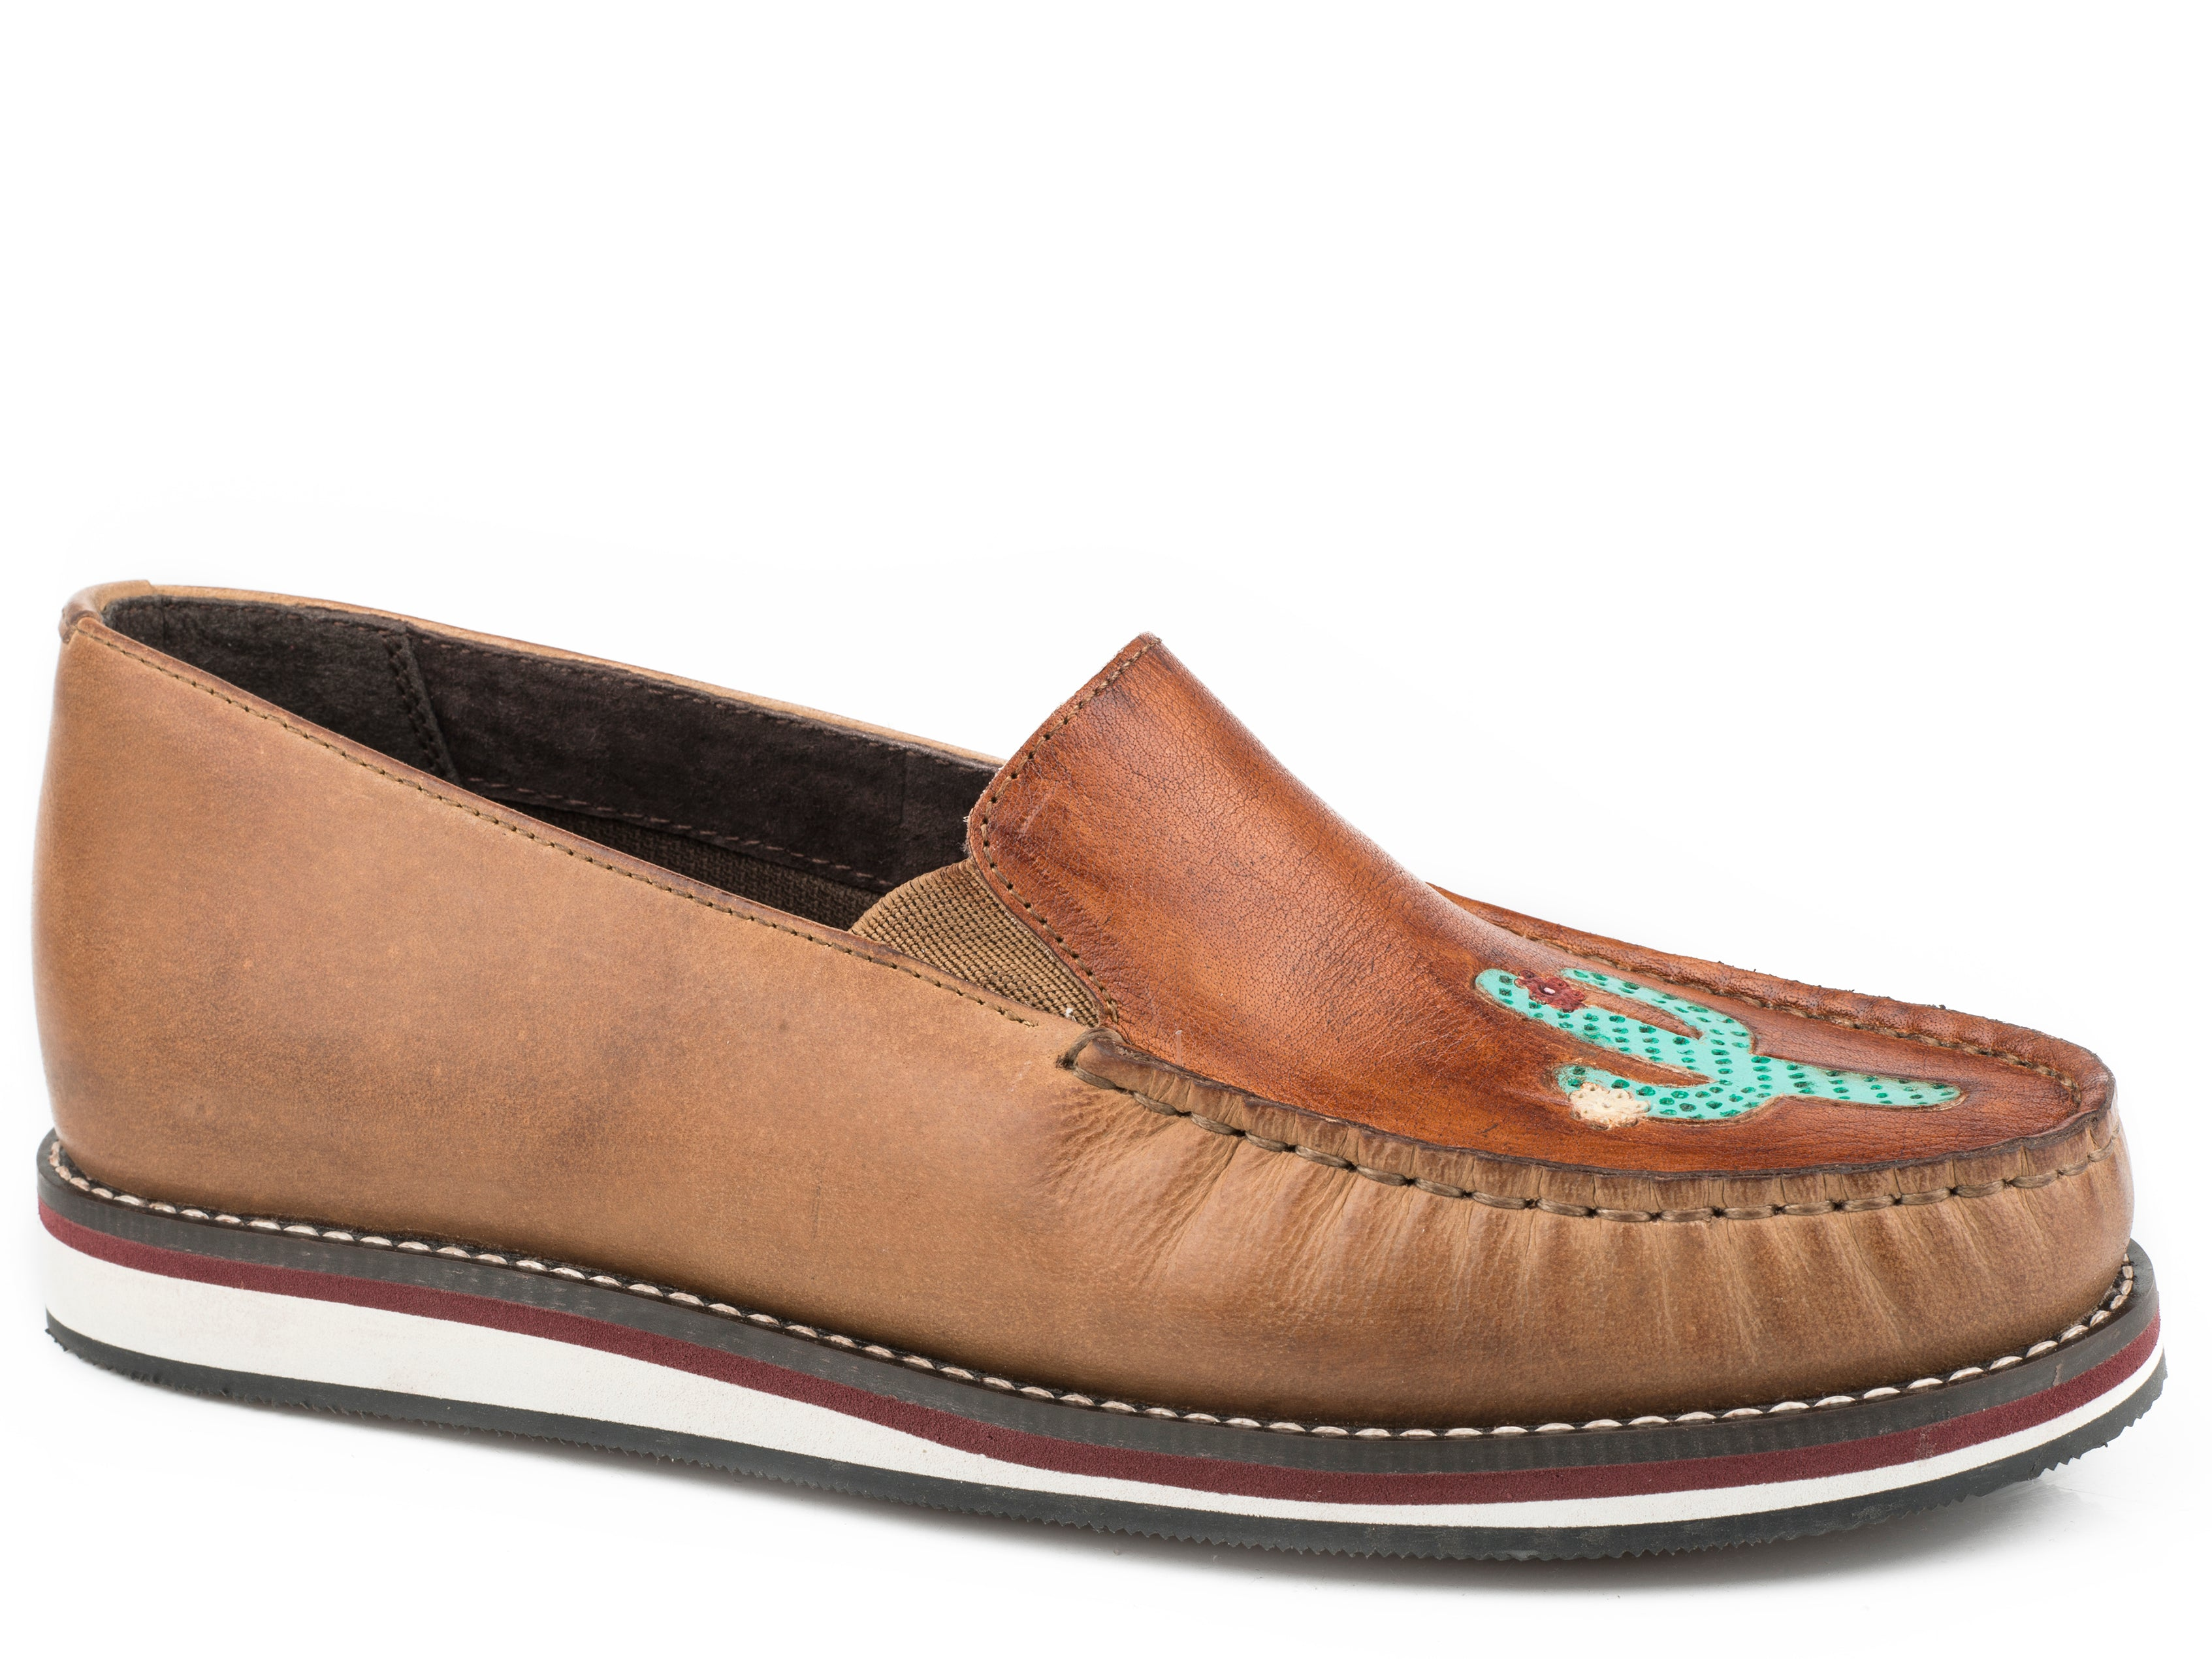 ROPER WOMENS TAN TAN BURNISHED LEATHER SLIP-ON LONE CACTUS CASUAL